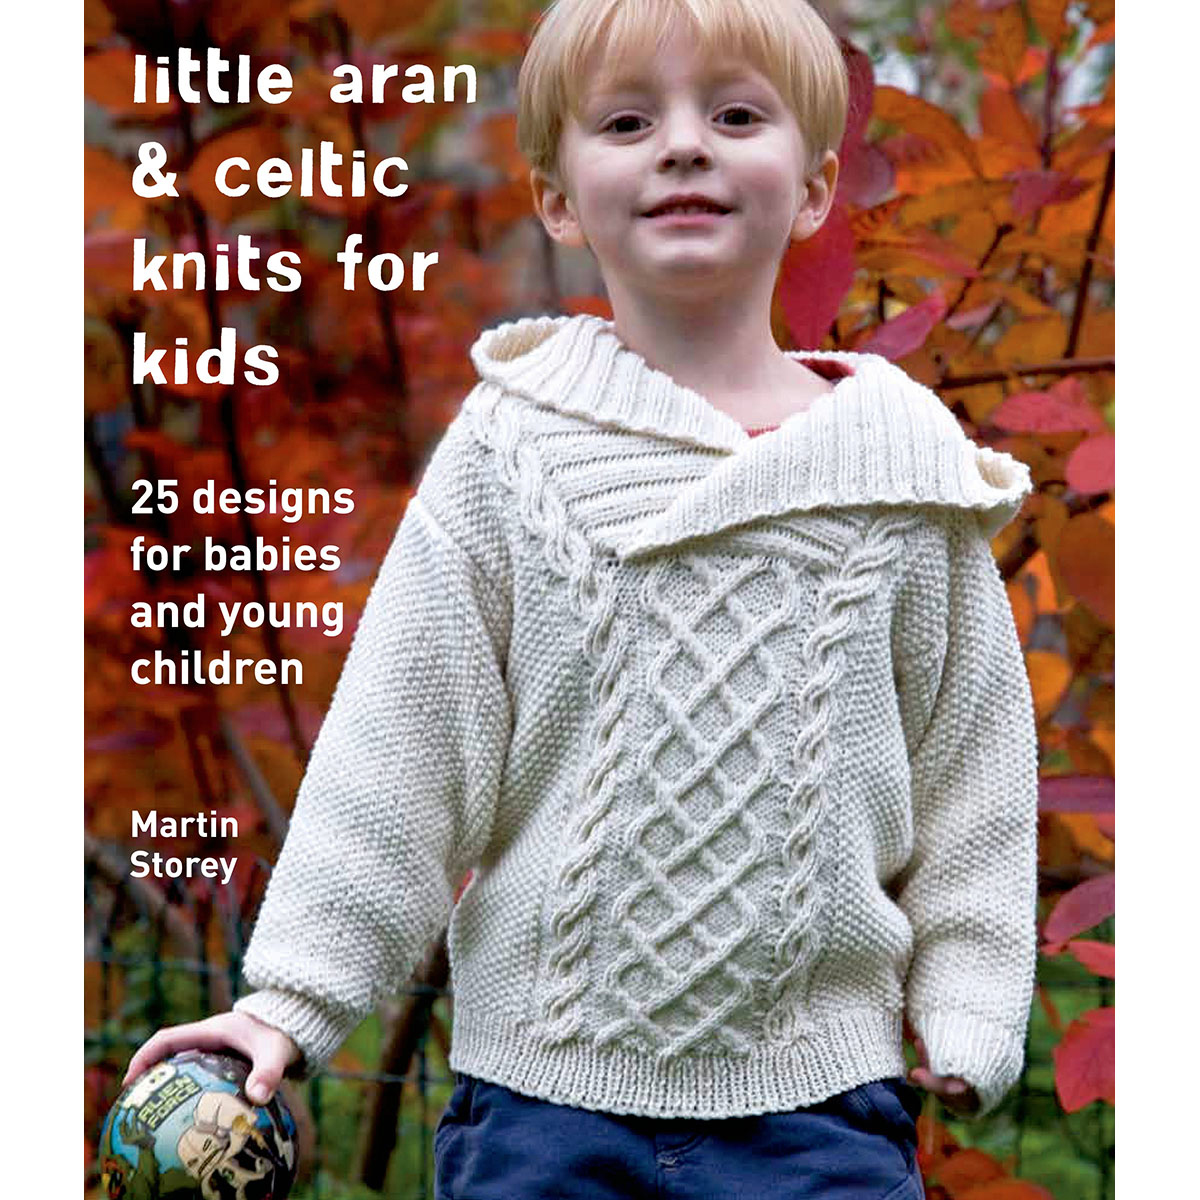 Knitting Pattern Books For Toddlers : St. Martins Books Little Aran & Celtic Knits For Kids